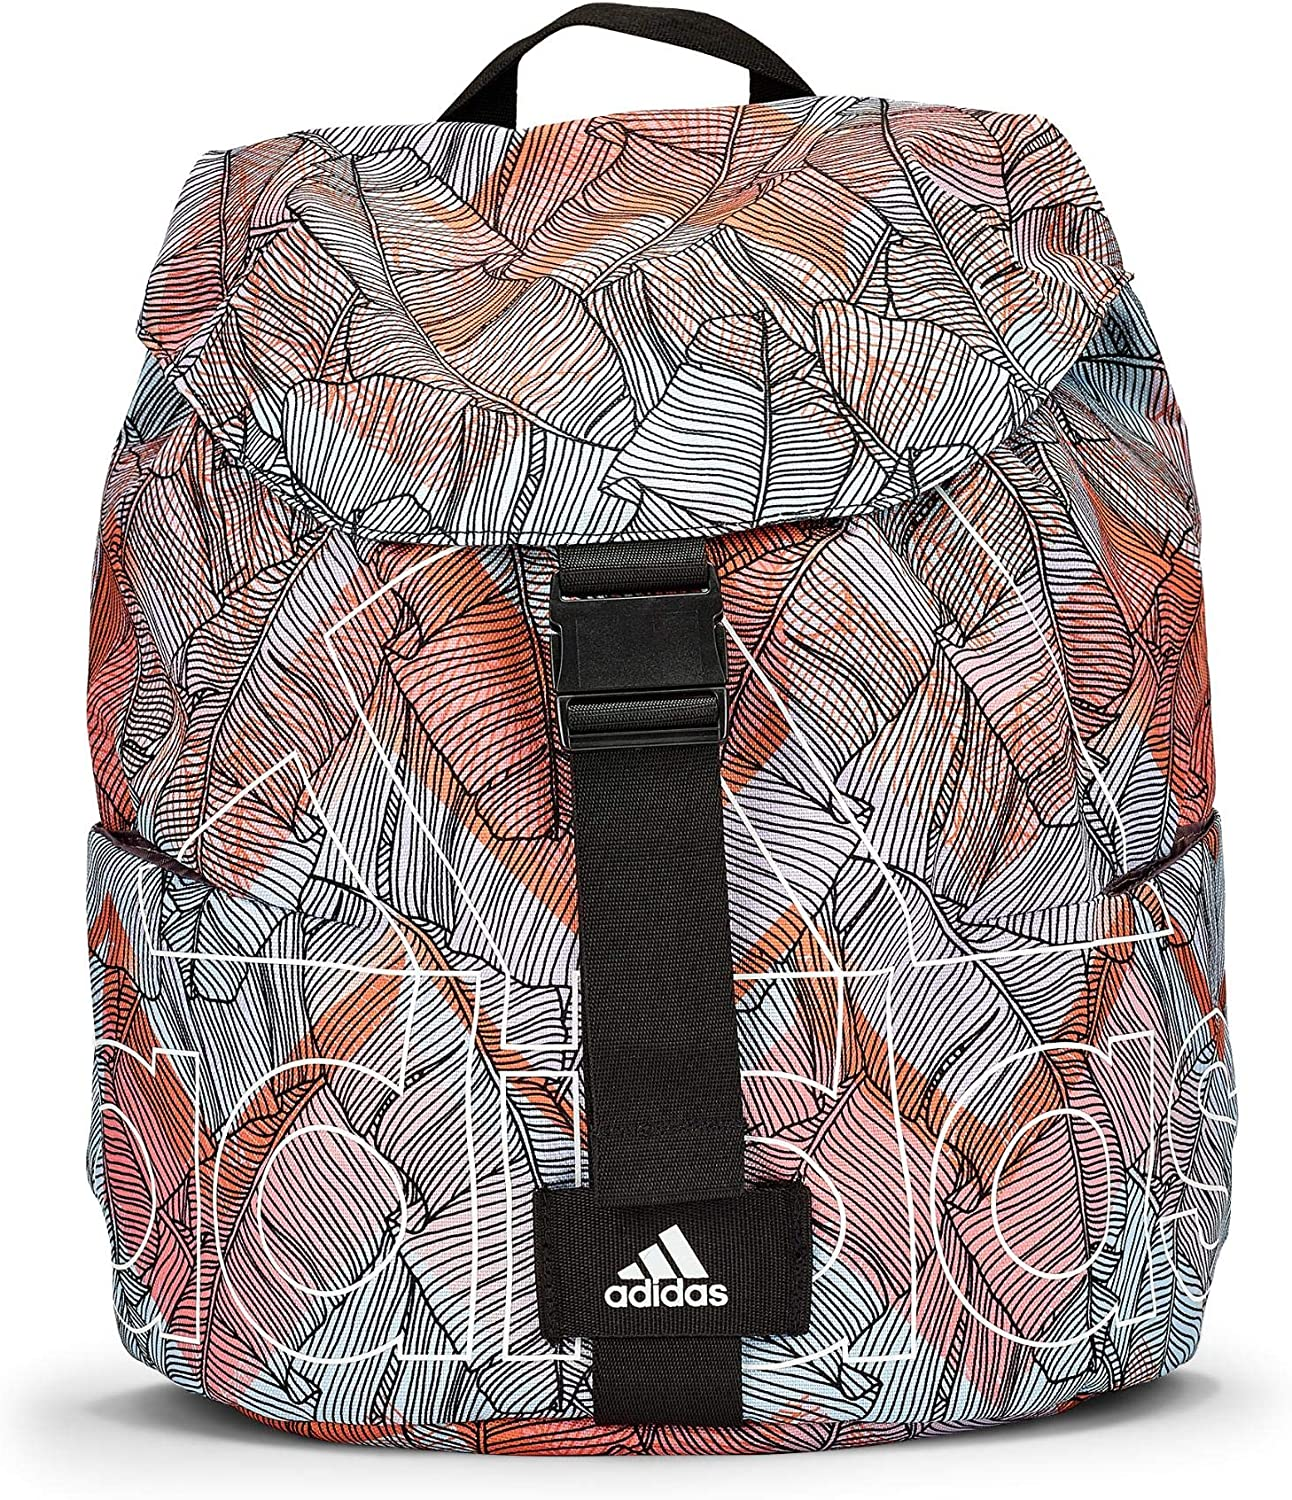 adidas W FLA SP BP G Backpack, Women, Matcie/Rosglo/Black/White, One Size